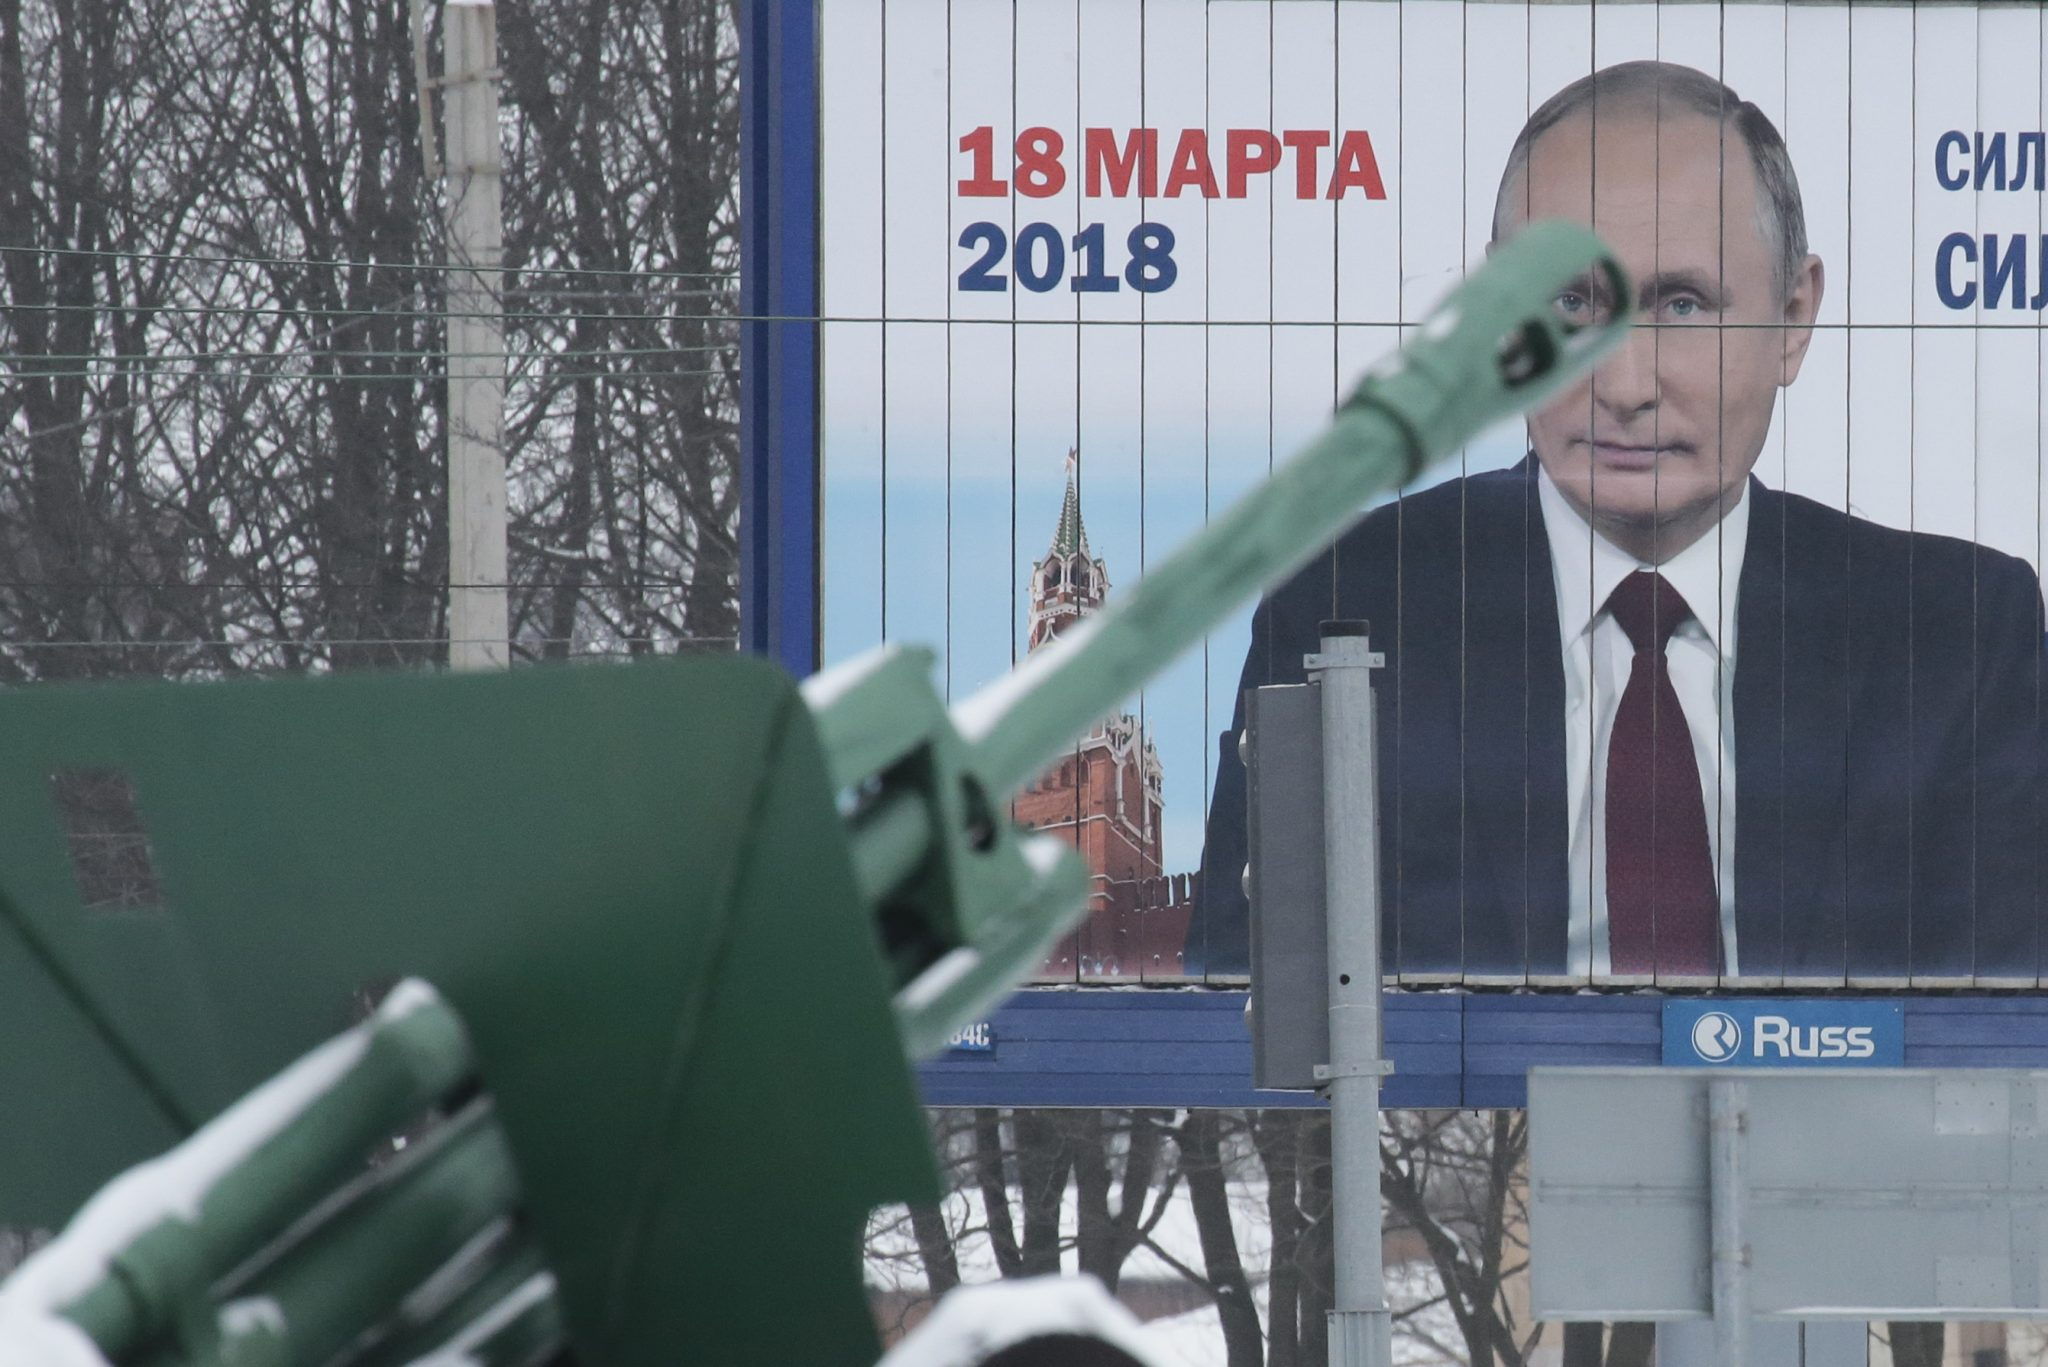 Russia to increase security following Dagestan militant attack, prior to elections: A historical Soviet artillery gun is seen in front of a board, which advertises the campaign of Russian President Putin ahead of the upcoming presidential election, at a World War Two memorial in St. Petersburg | REUTERS